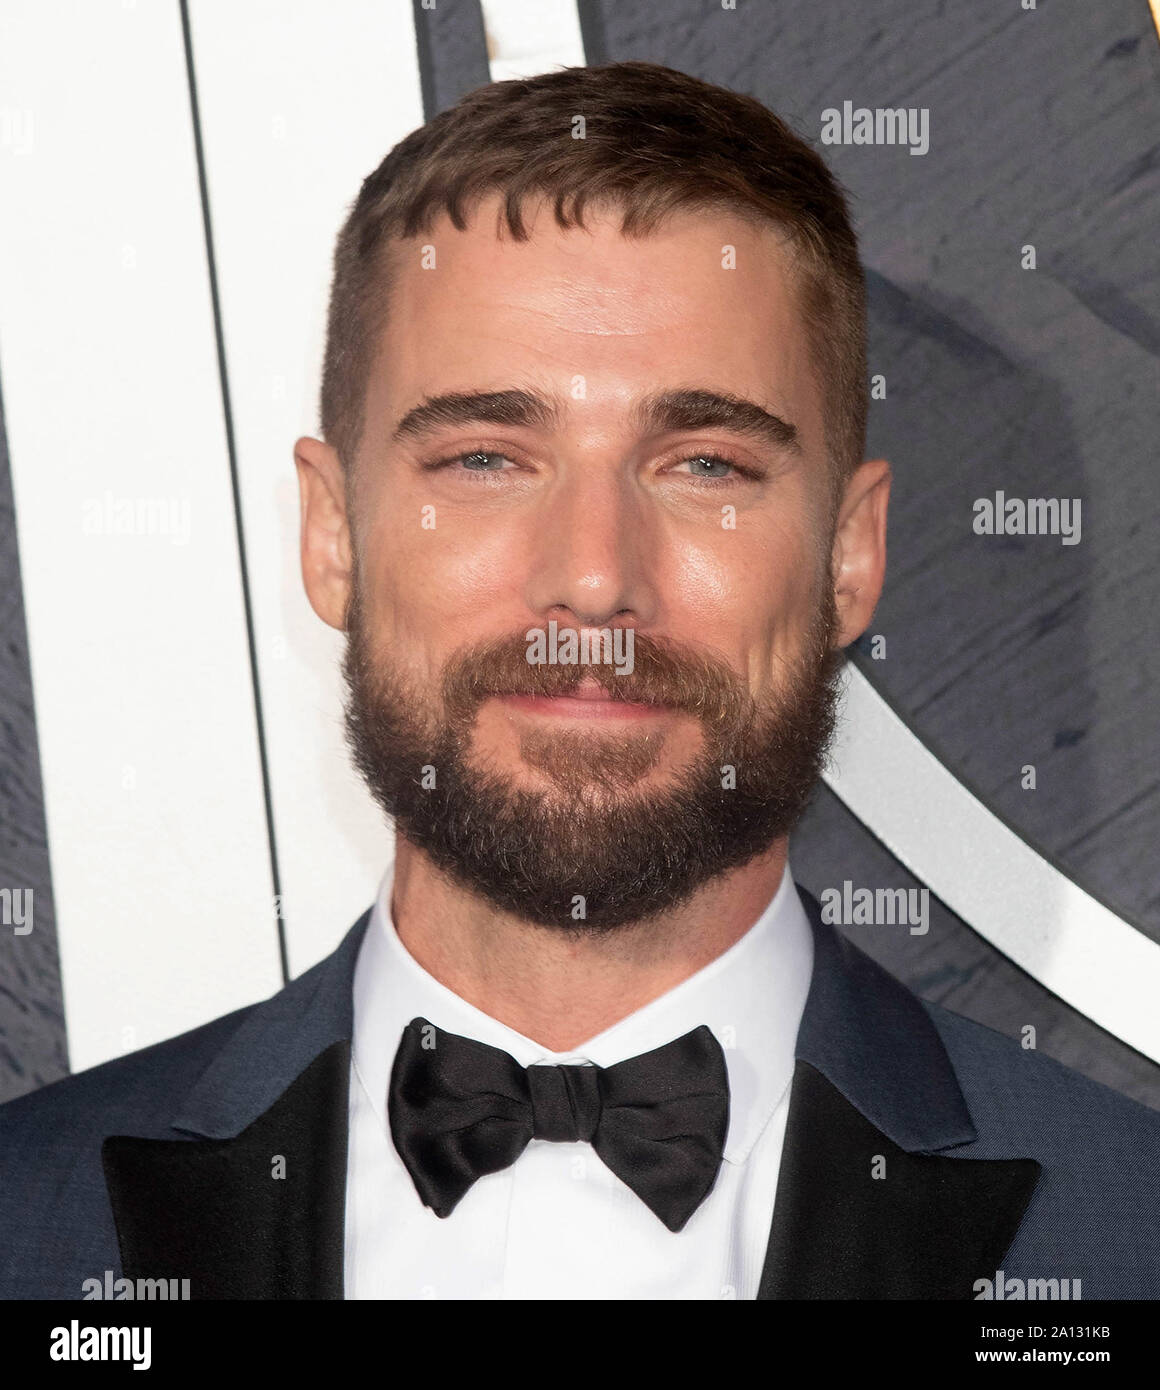 LOS ANGELES, CALIFORNIA - SEPTEMBER 22: Dustin Milligan attends HBO's Post Emmy Awards Reception at The Plaza at the Pacific Design Center on September 22, 2019 in Los Angeles, California. Photo: Annie Lesser/imageSPACE/MediaPunch Stock Photo